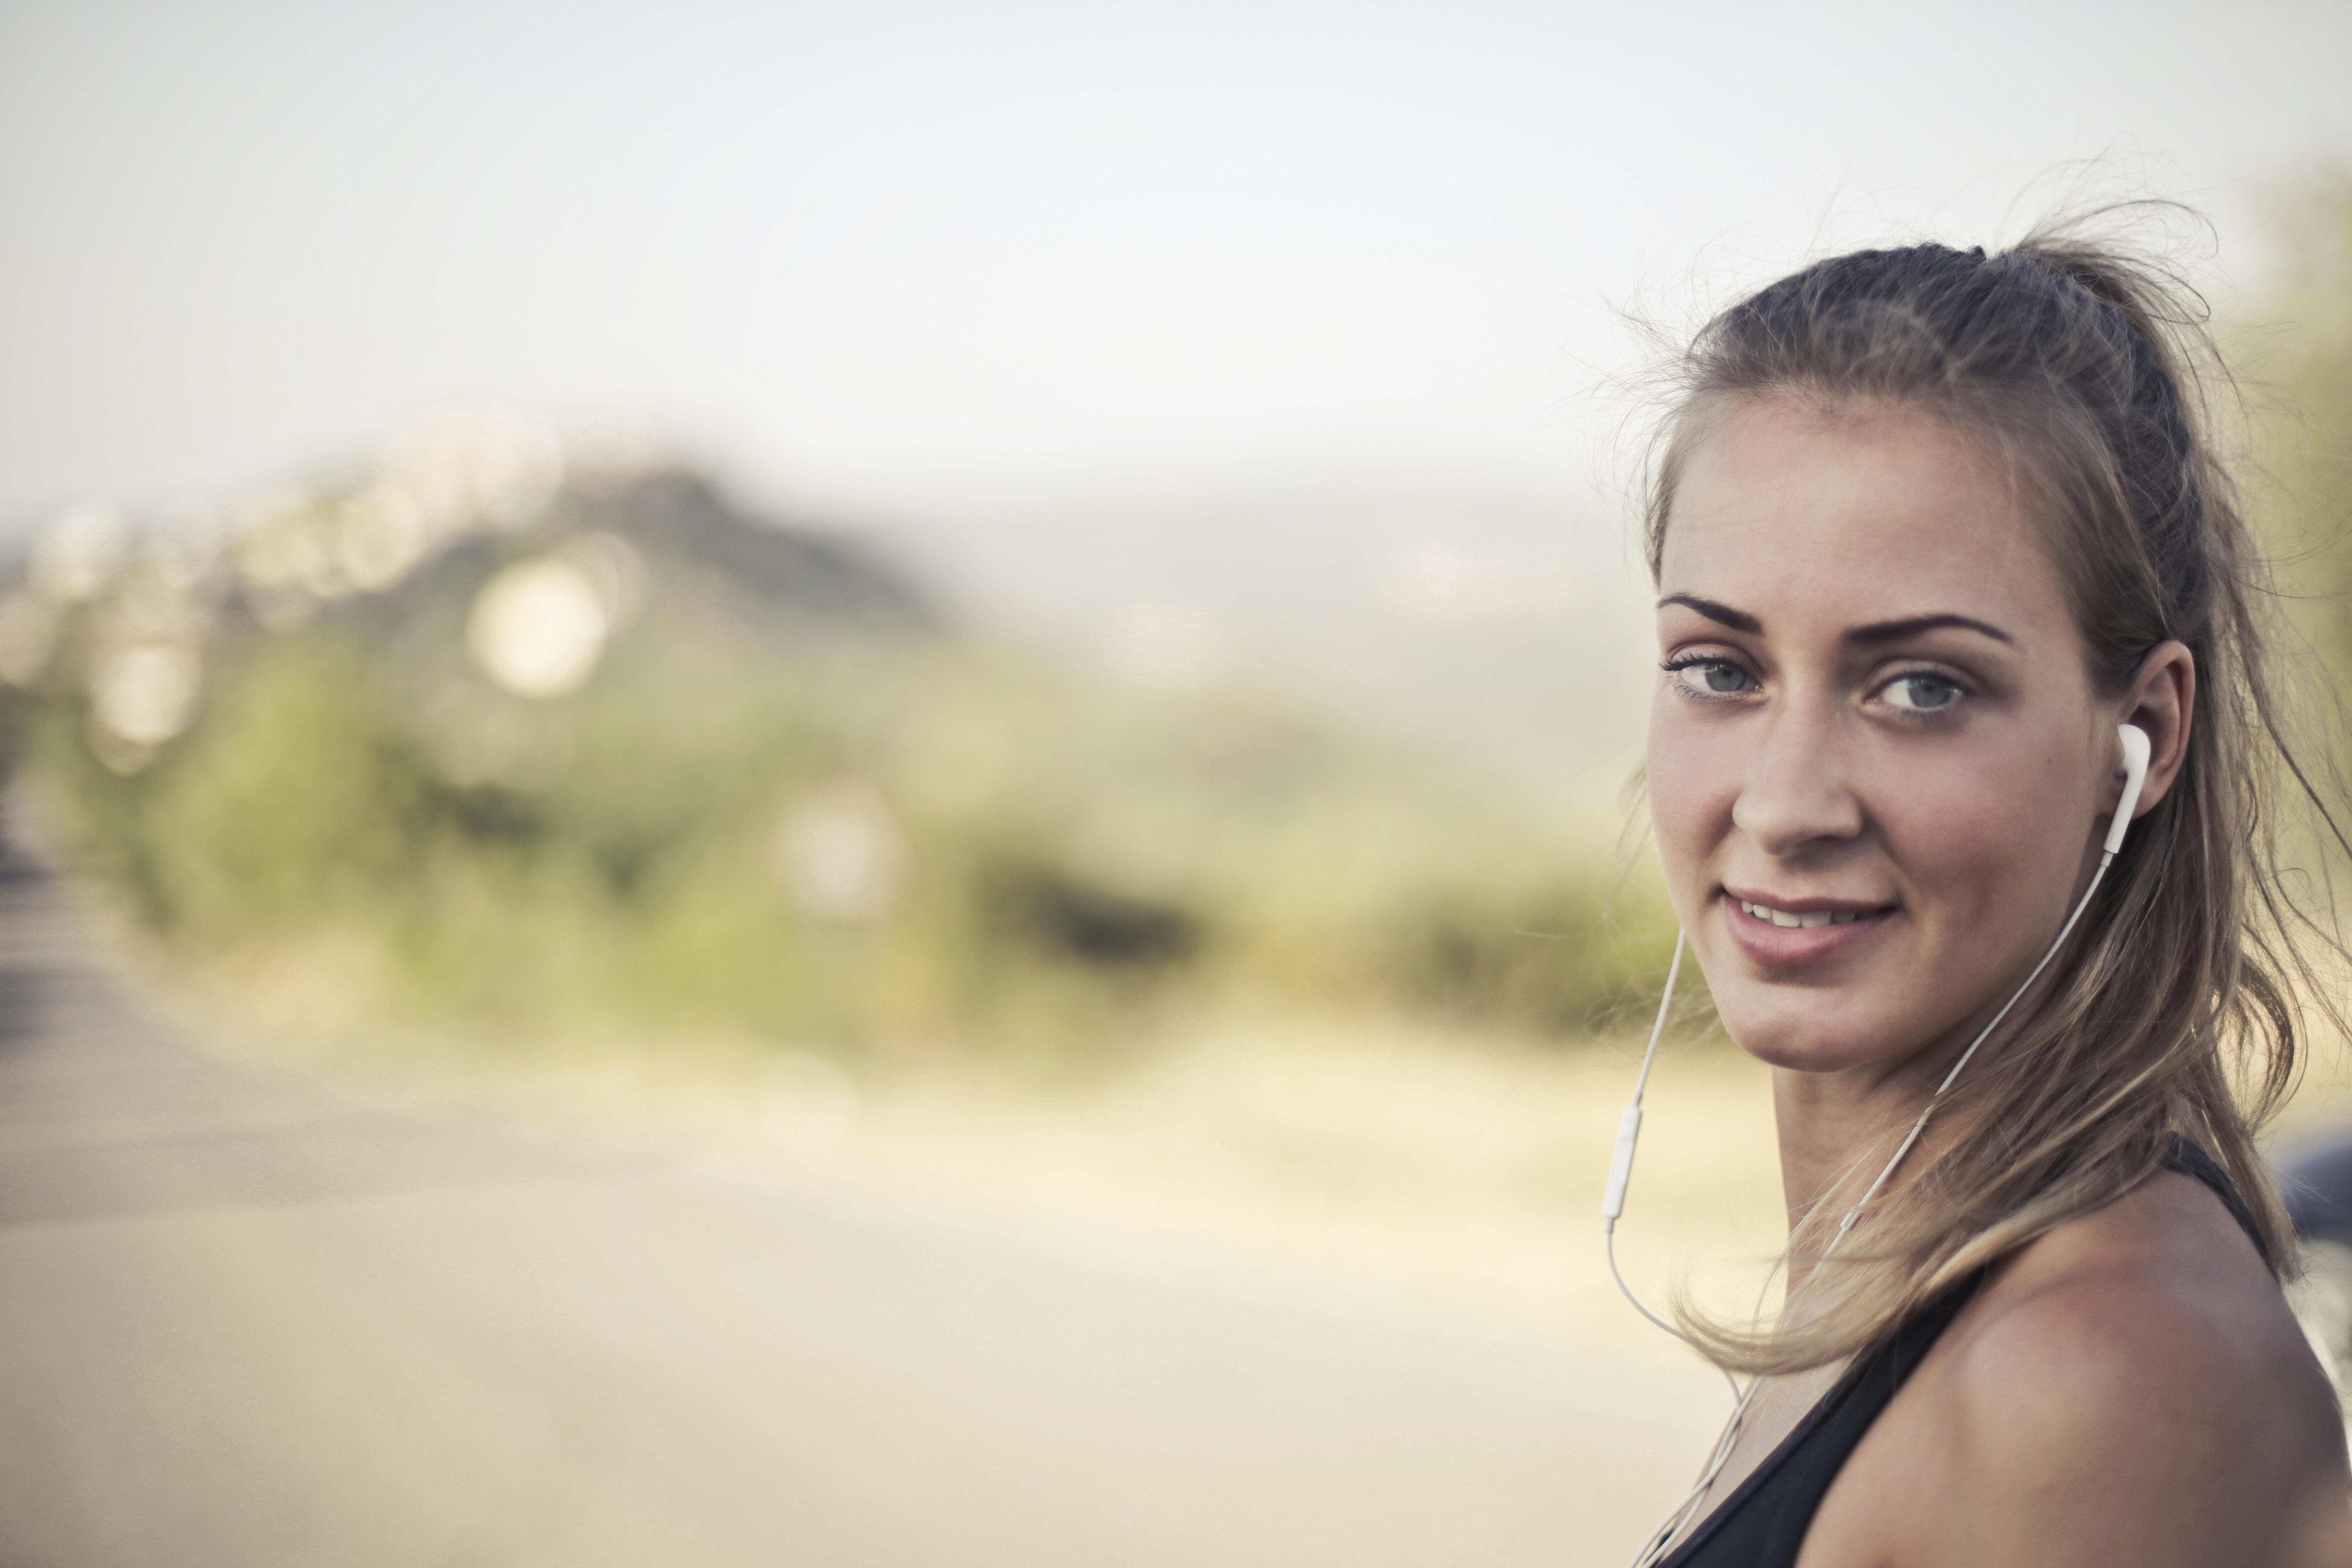 Woman Wearing Black Tank Top And White Earbuds, Active, Beautiful, Blond, Earphone, HQ Photo